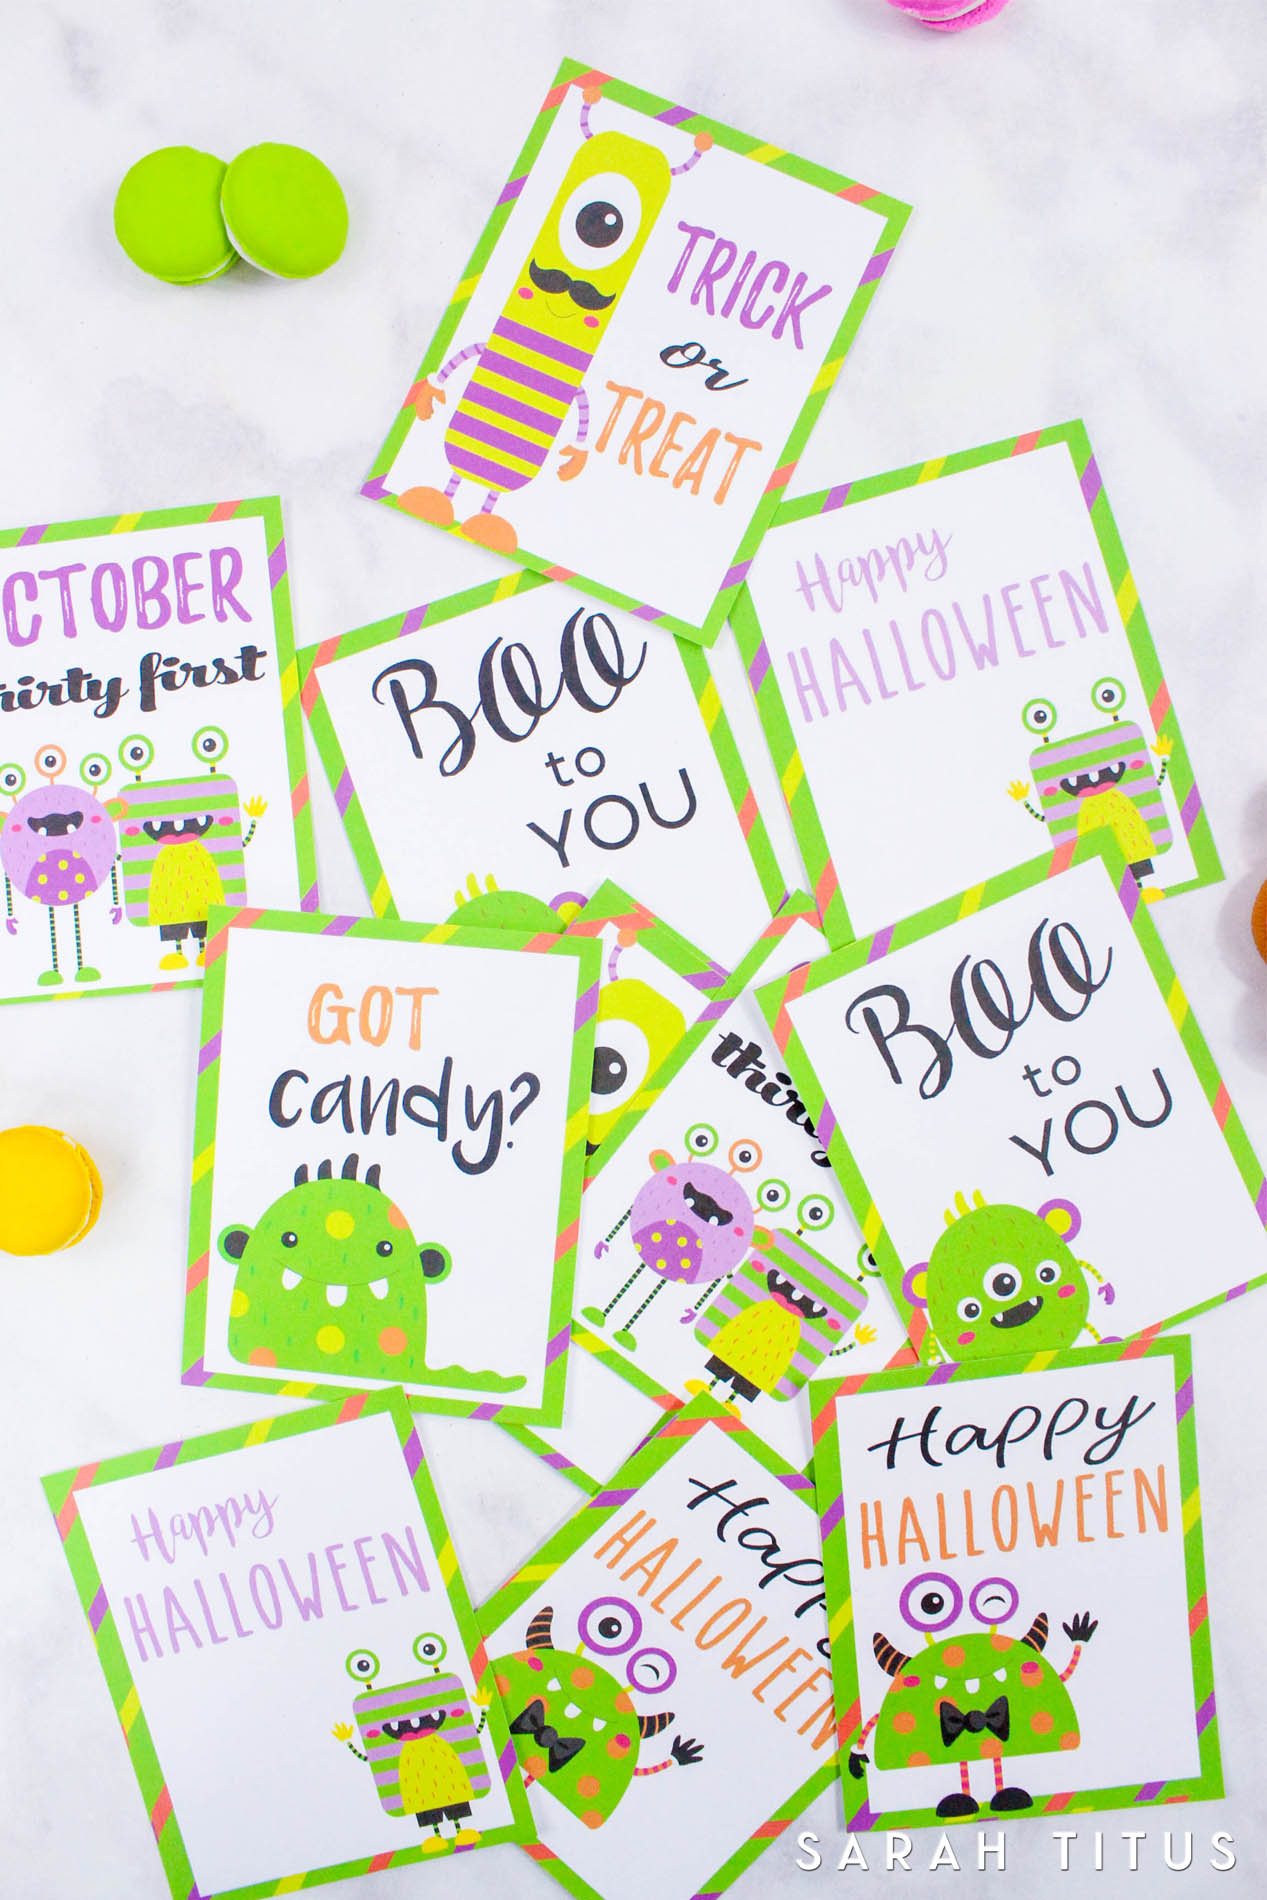 No need to go to the store and pay $10 for a game for your kids to play. Simply print these Halloween cards out FOR FREE!